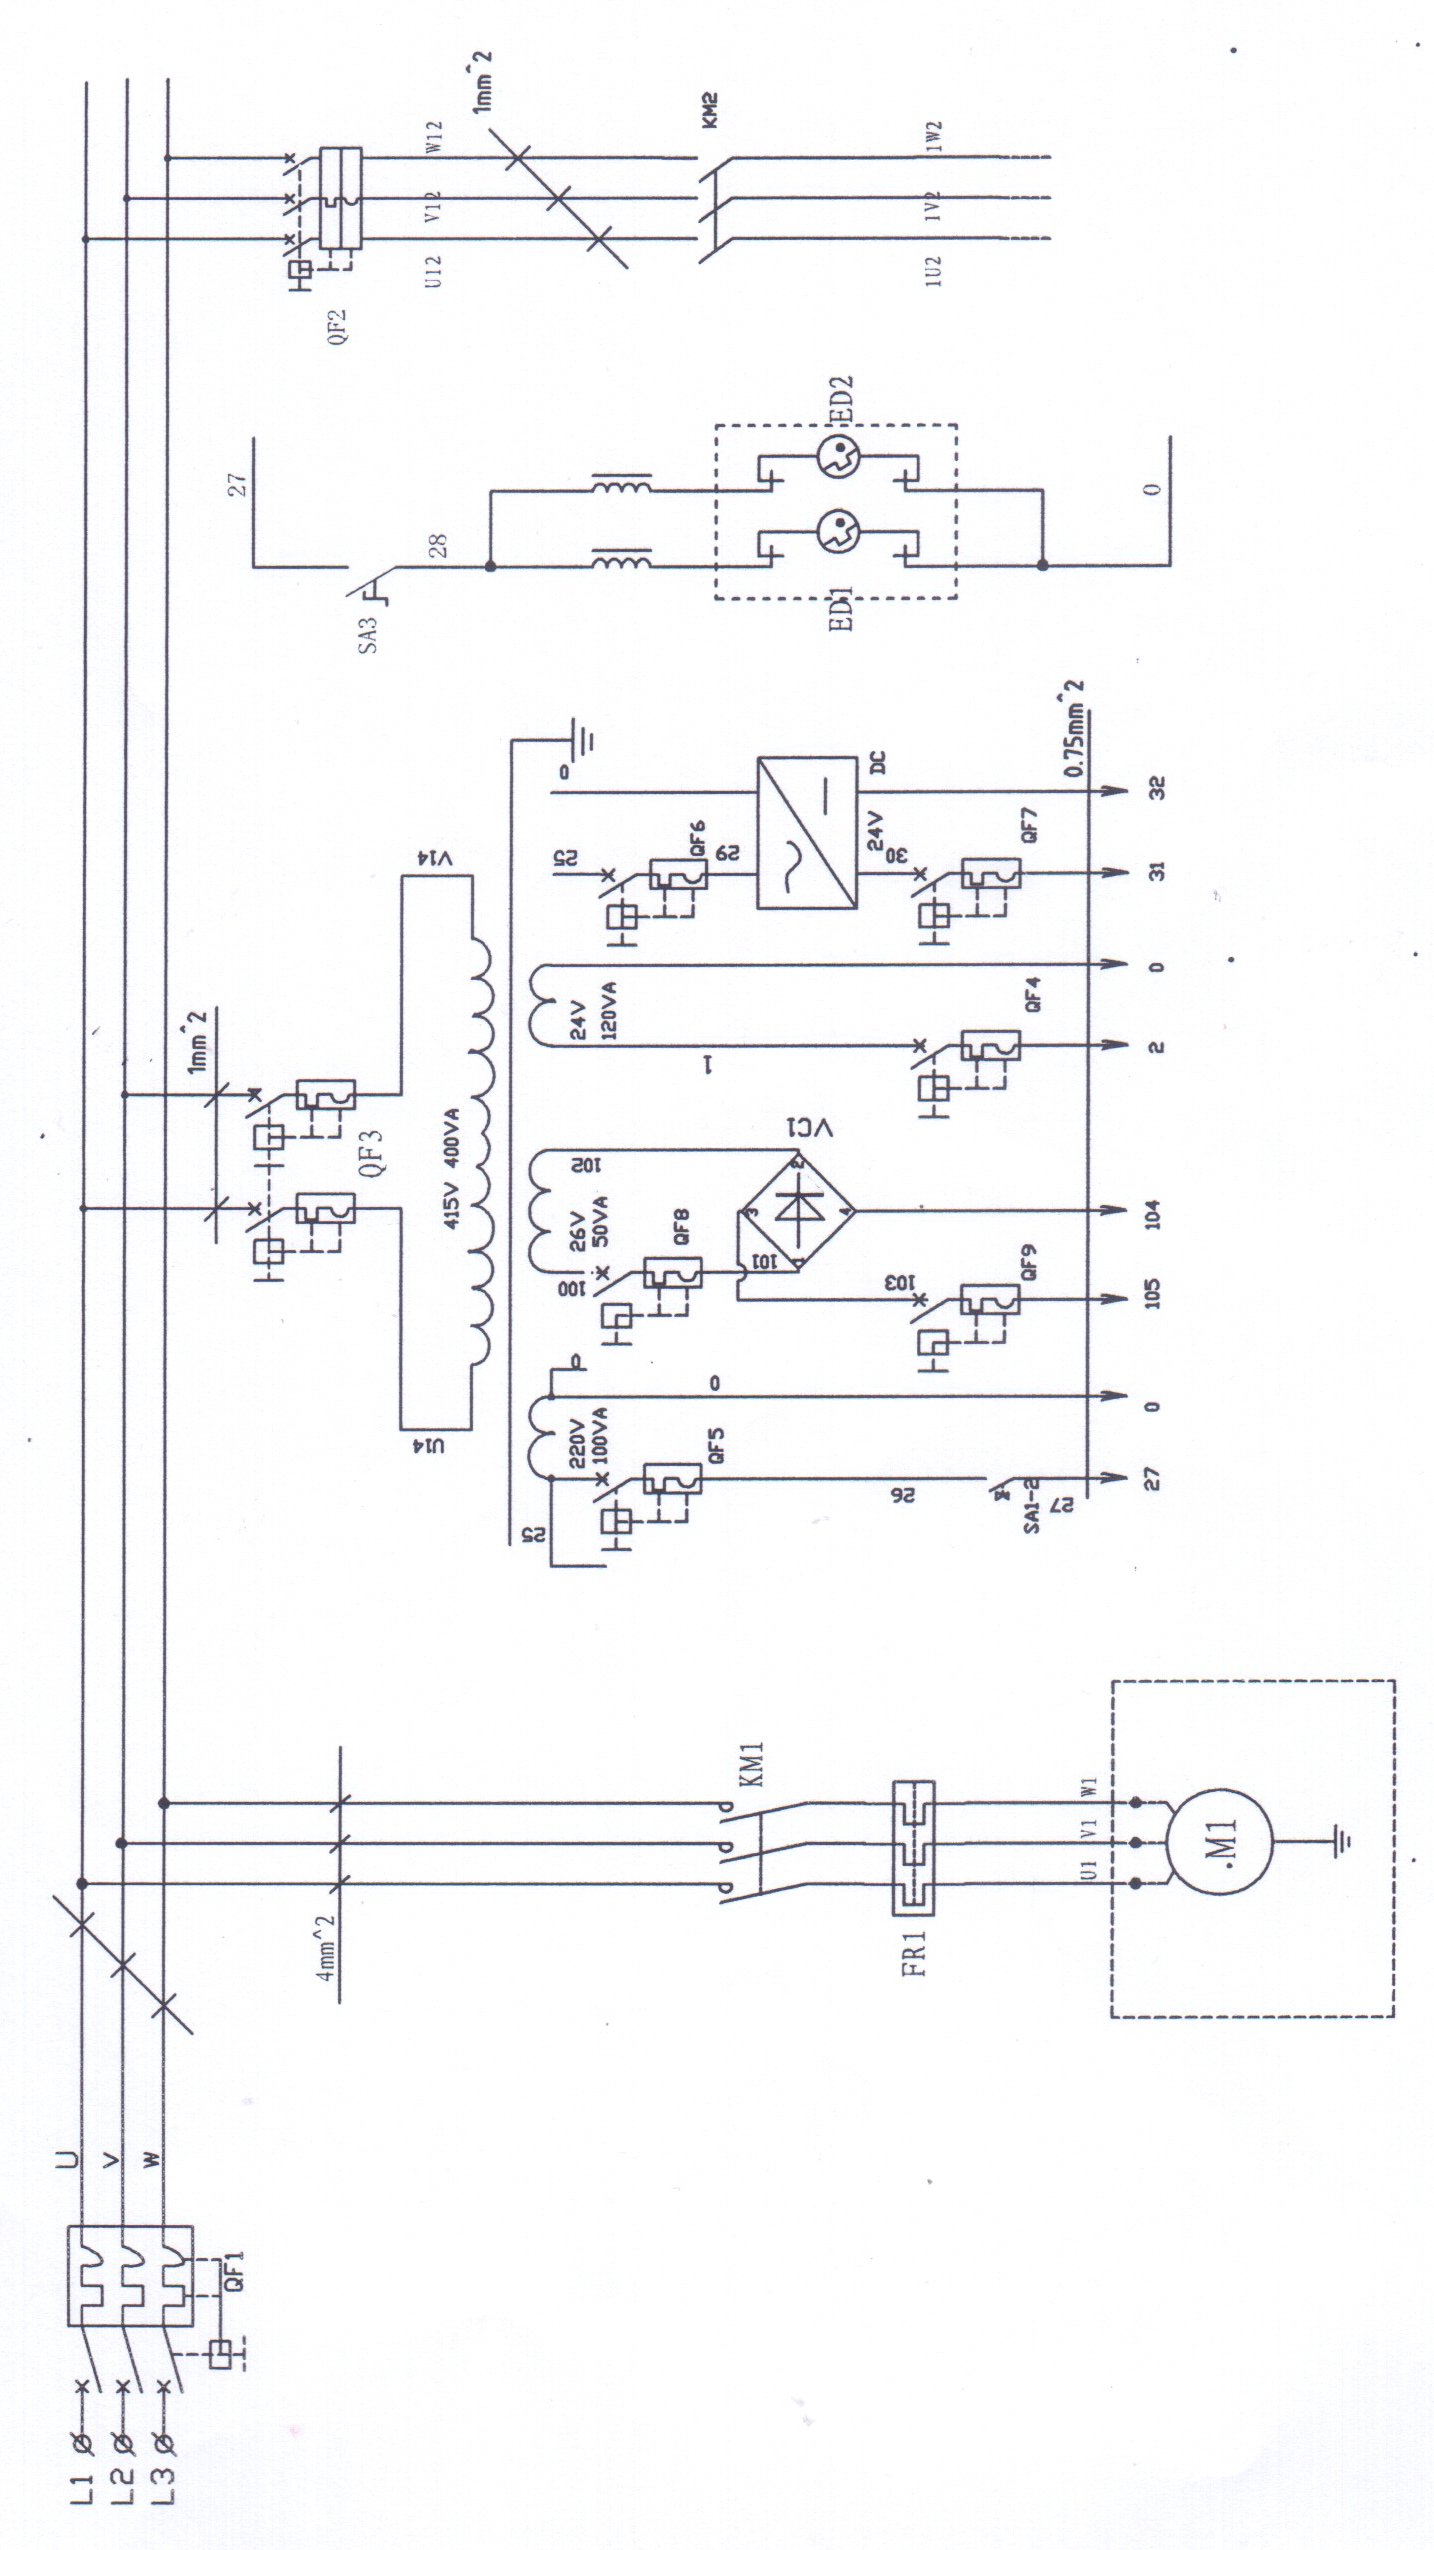 machinery wiring diagram all wiring diagram Tools and Machinery